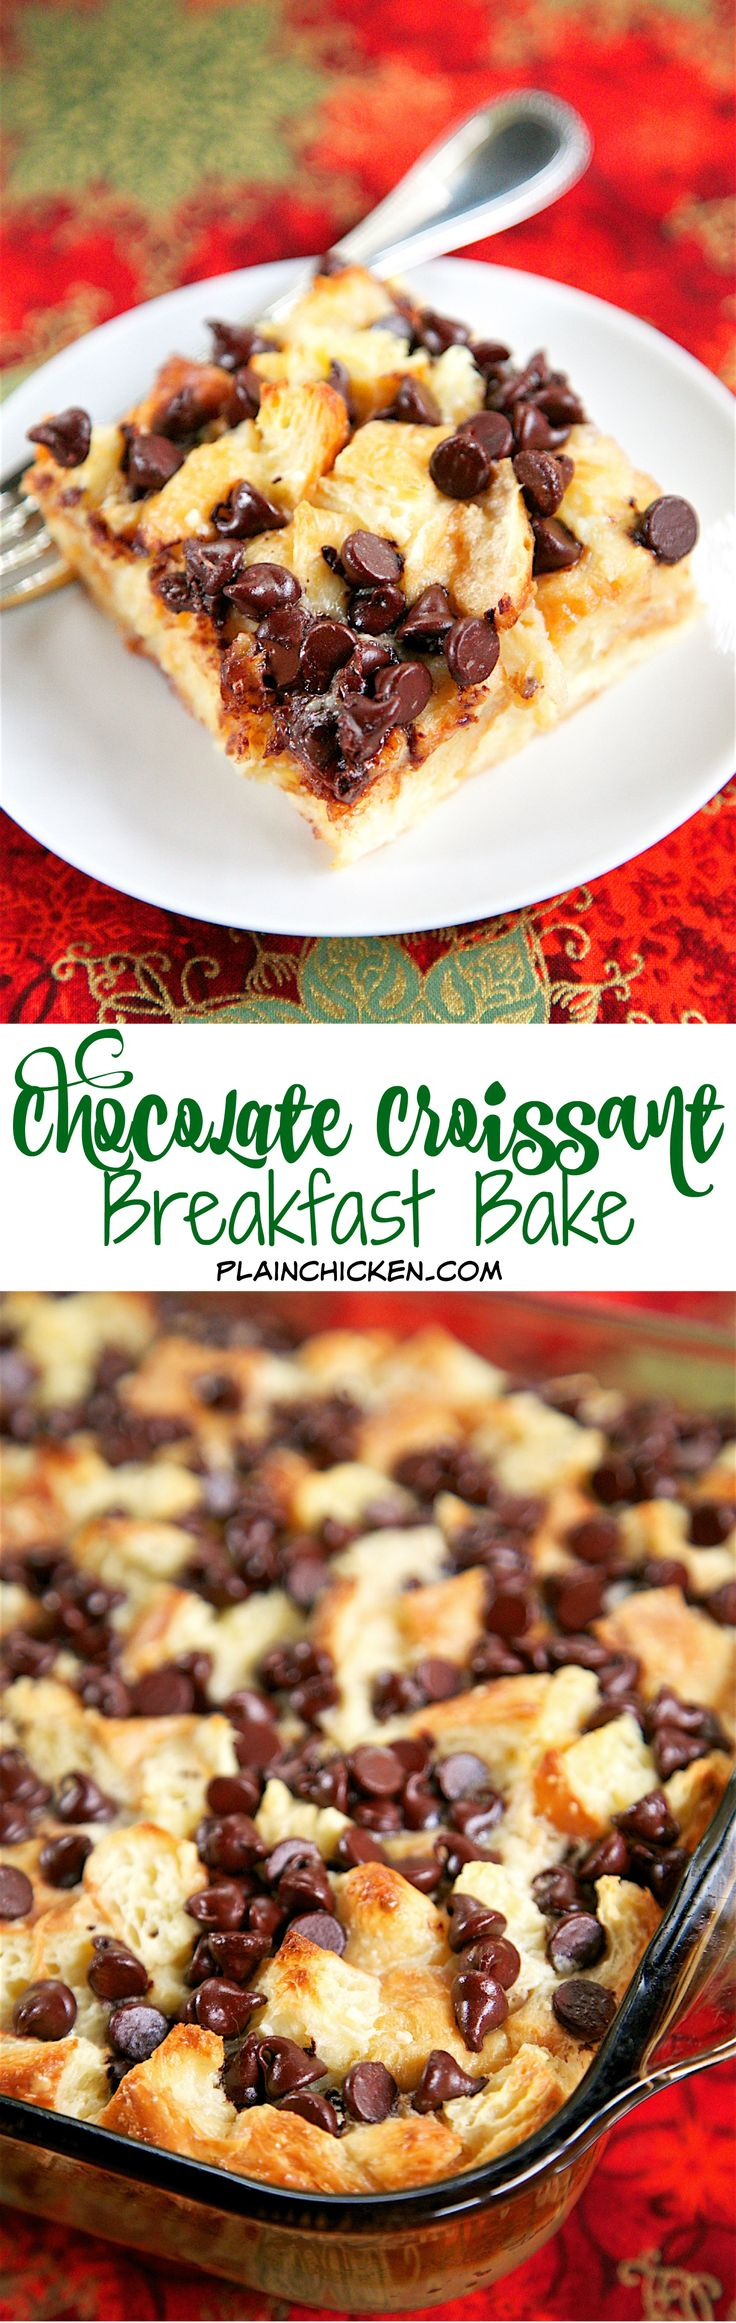 Chocolate Croissant Breakfast Bake - Buttery croissants, cream cheese, sugar, eggs, milk and chocolate. Can assemble and refrigerate overnight. This is incredibly delicious! Can eat for breakfast or d (Bake Treats For Christmas)